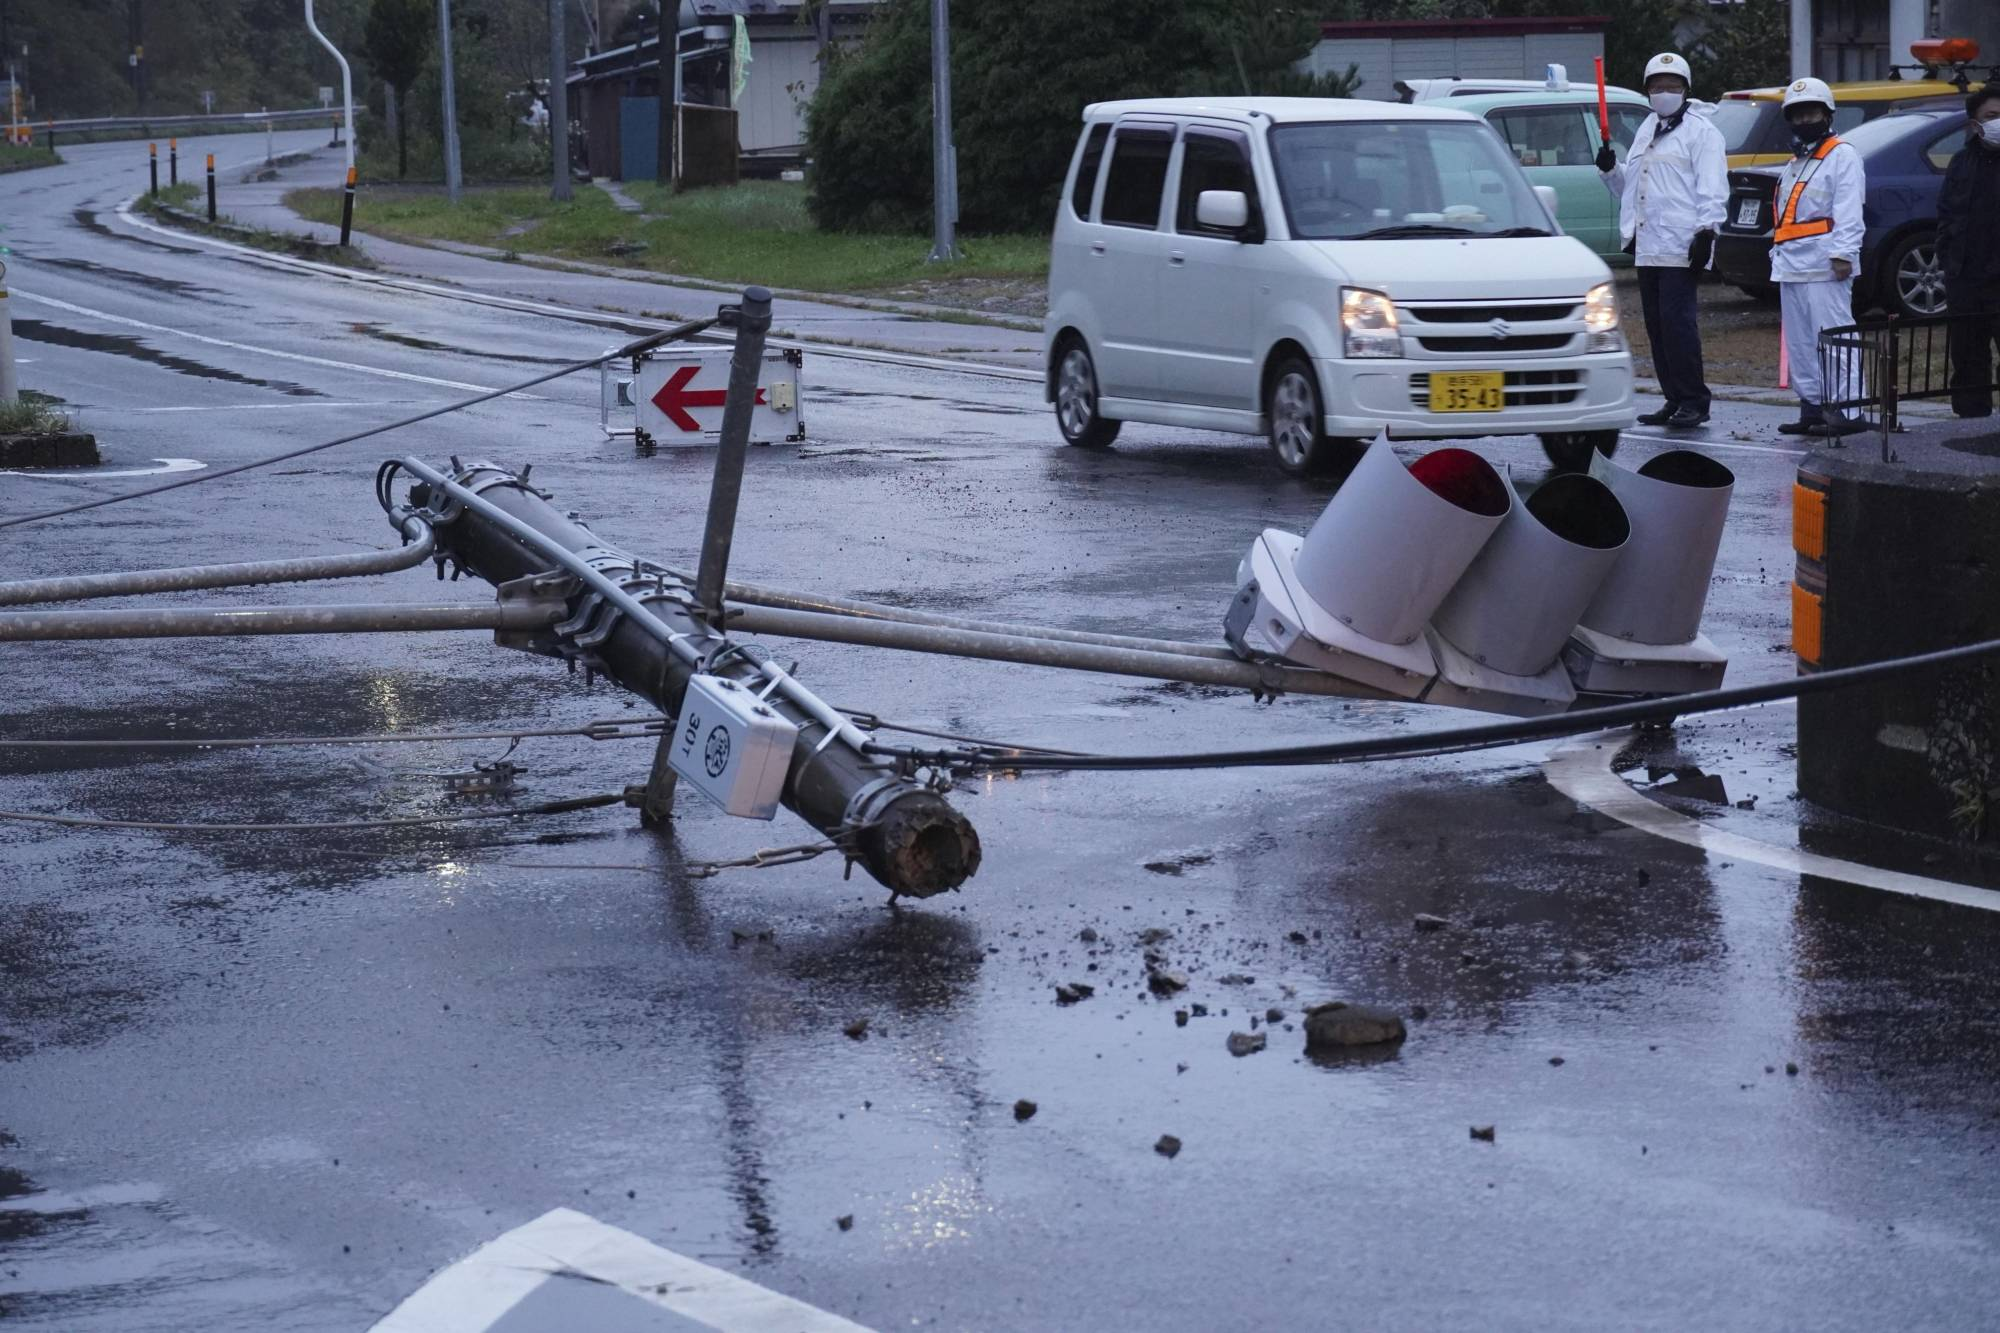 A traffic light is seen collapsed in the town of Iwate in Iwate Prefecture following an earthquake early Wednesday morning. | KYODO